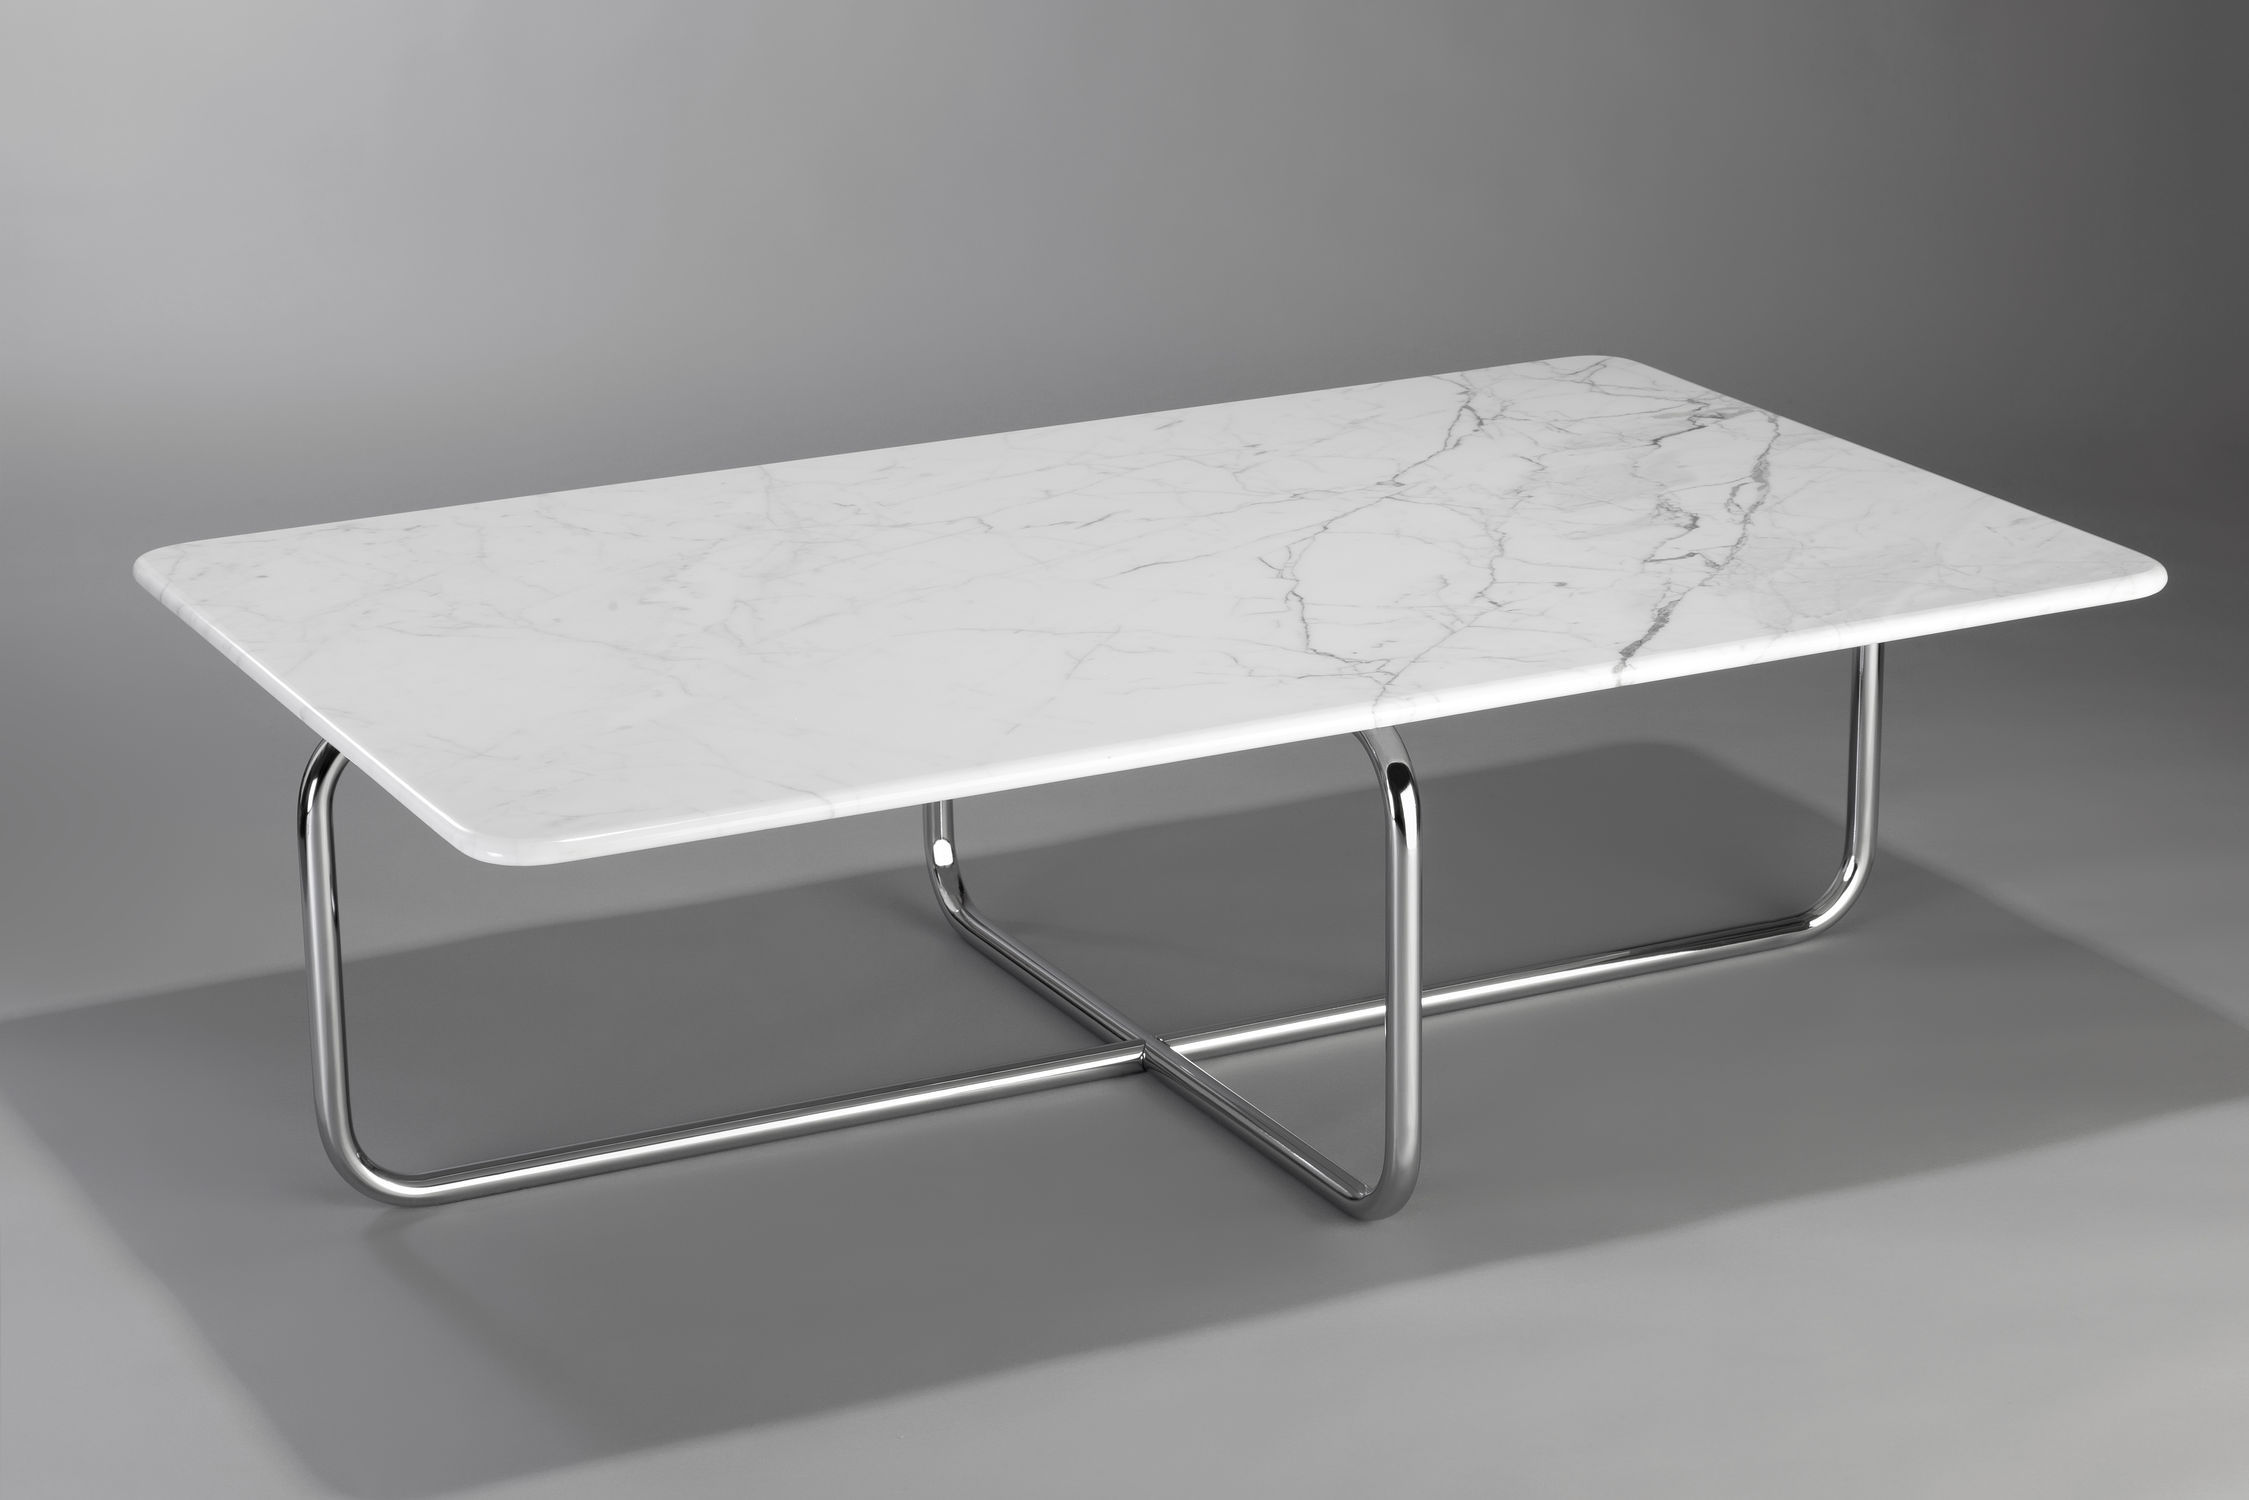 bauhaus design coffee table / marble / steel / for public